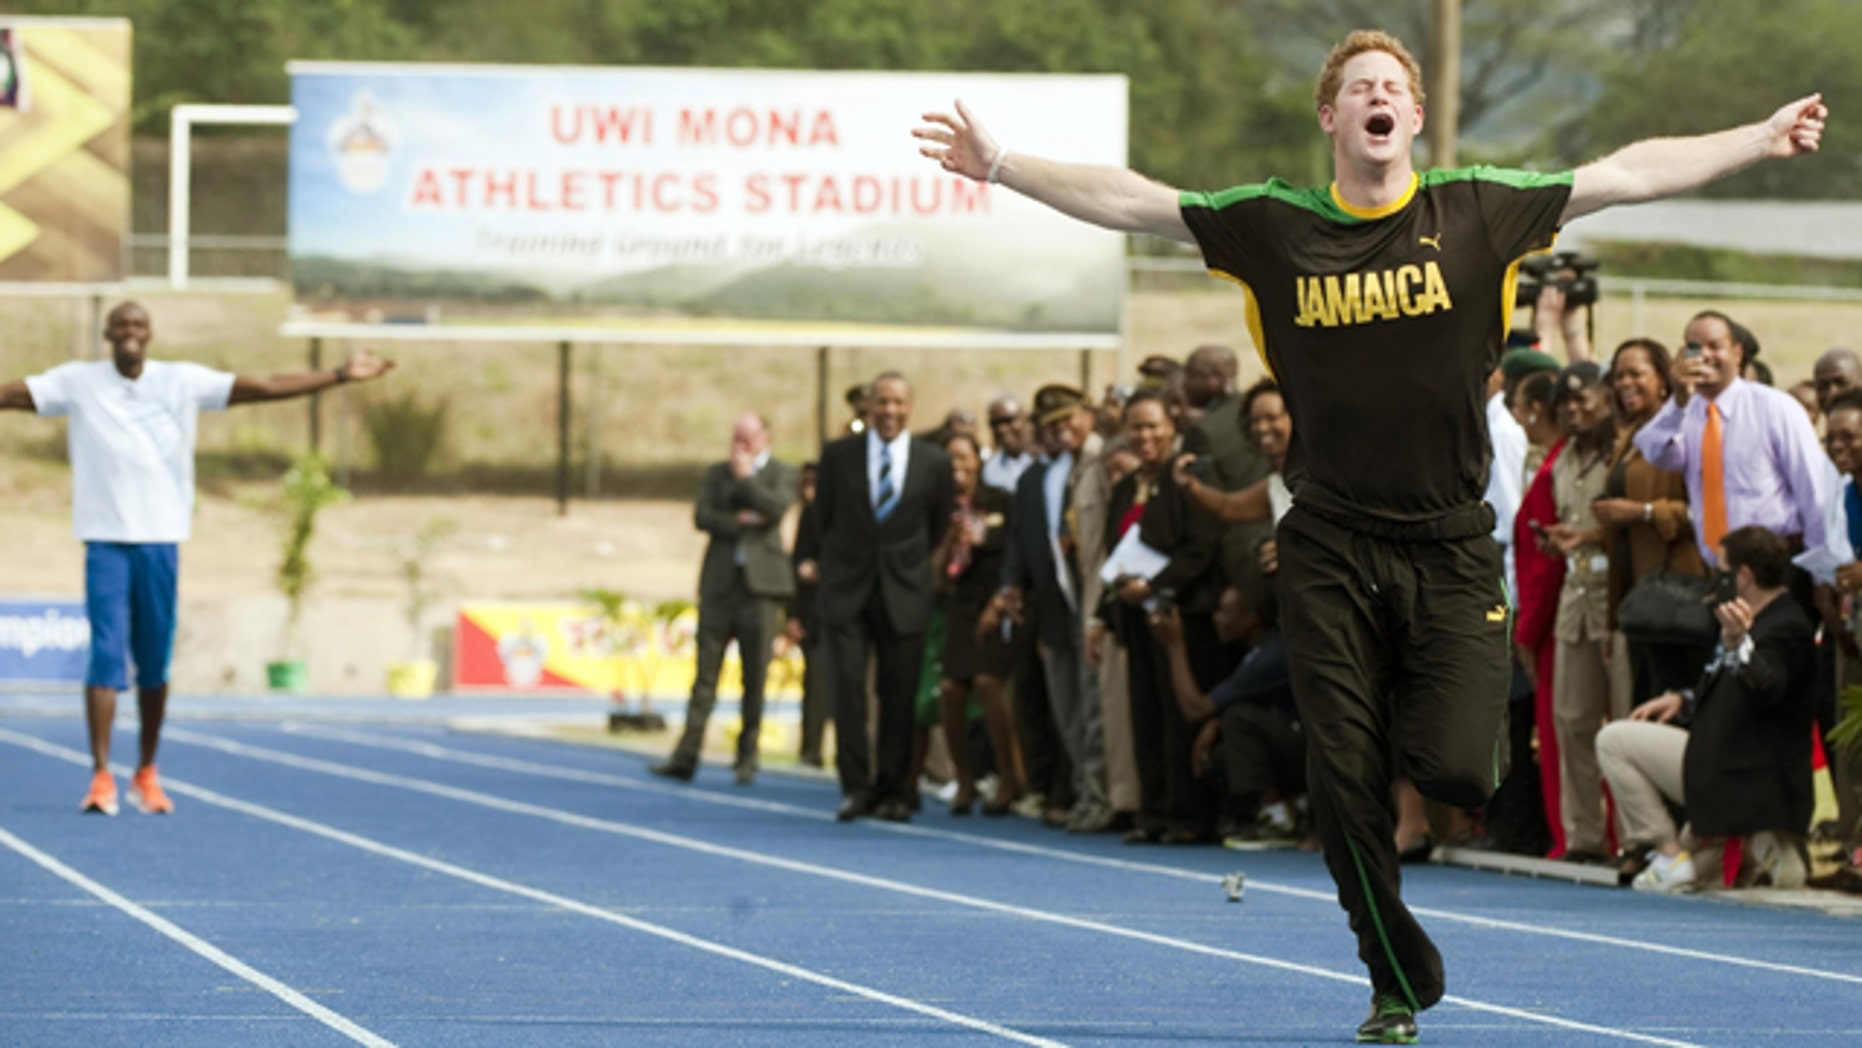 March 6: Prince Harry wins against Olympic sprint champion Usain Bolt, seen rear, by making a false start at a mock race at the University of the West Indies, in Jamaica.